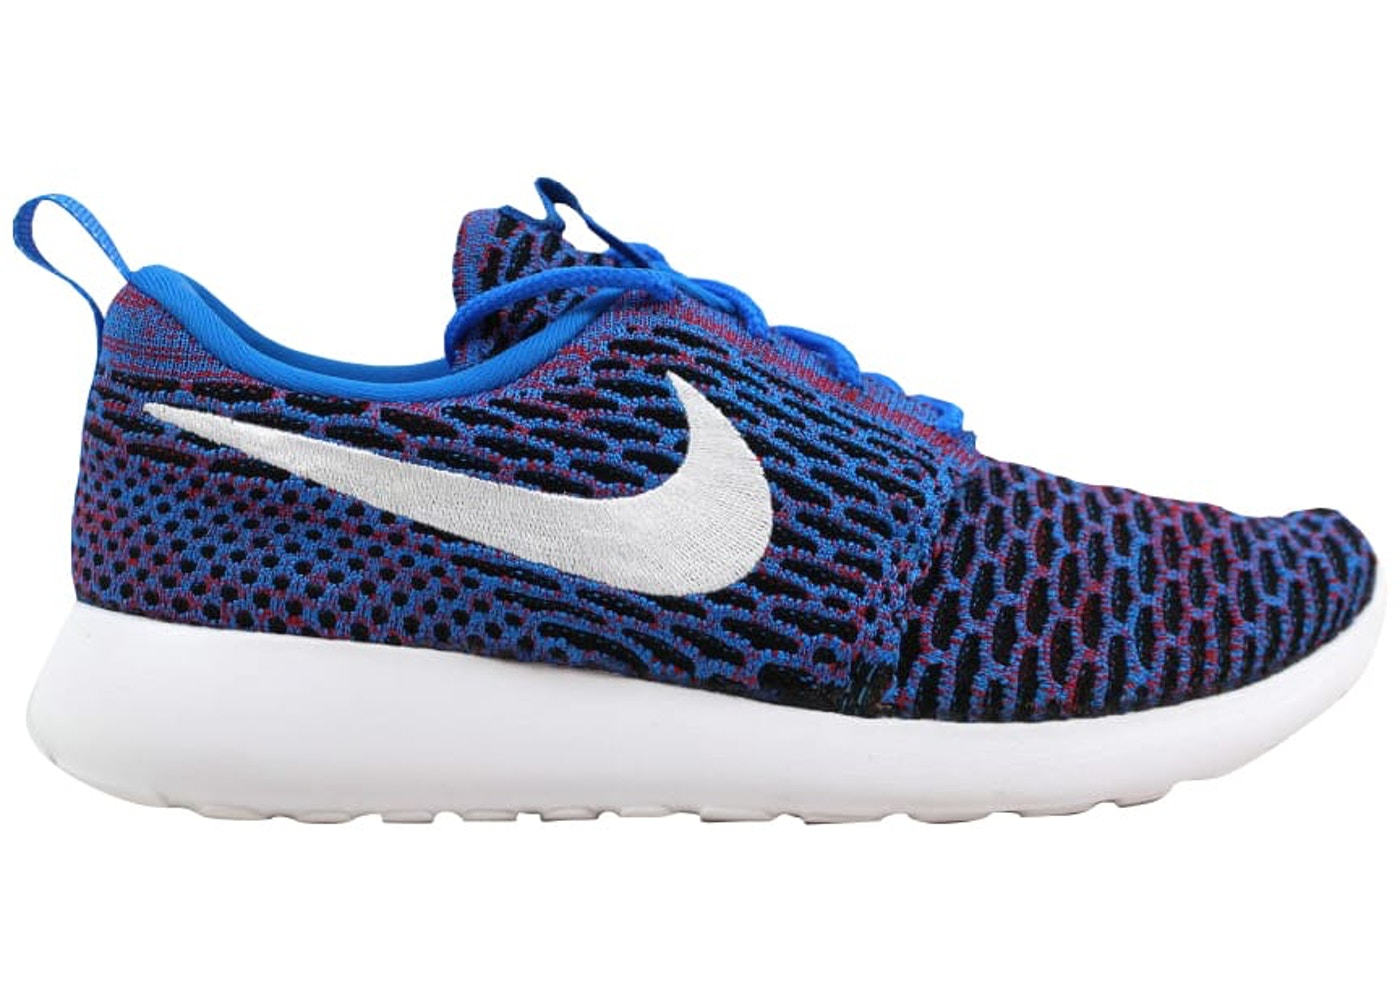 outlet store ae751 a2918 Nike Roshe One Flyknit Photo Blue/White-University Red-Black (W)